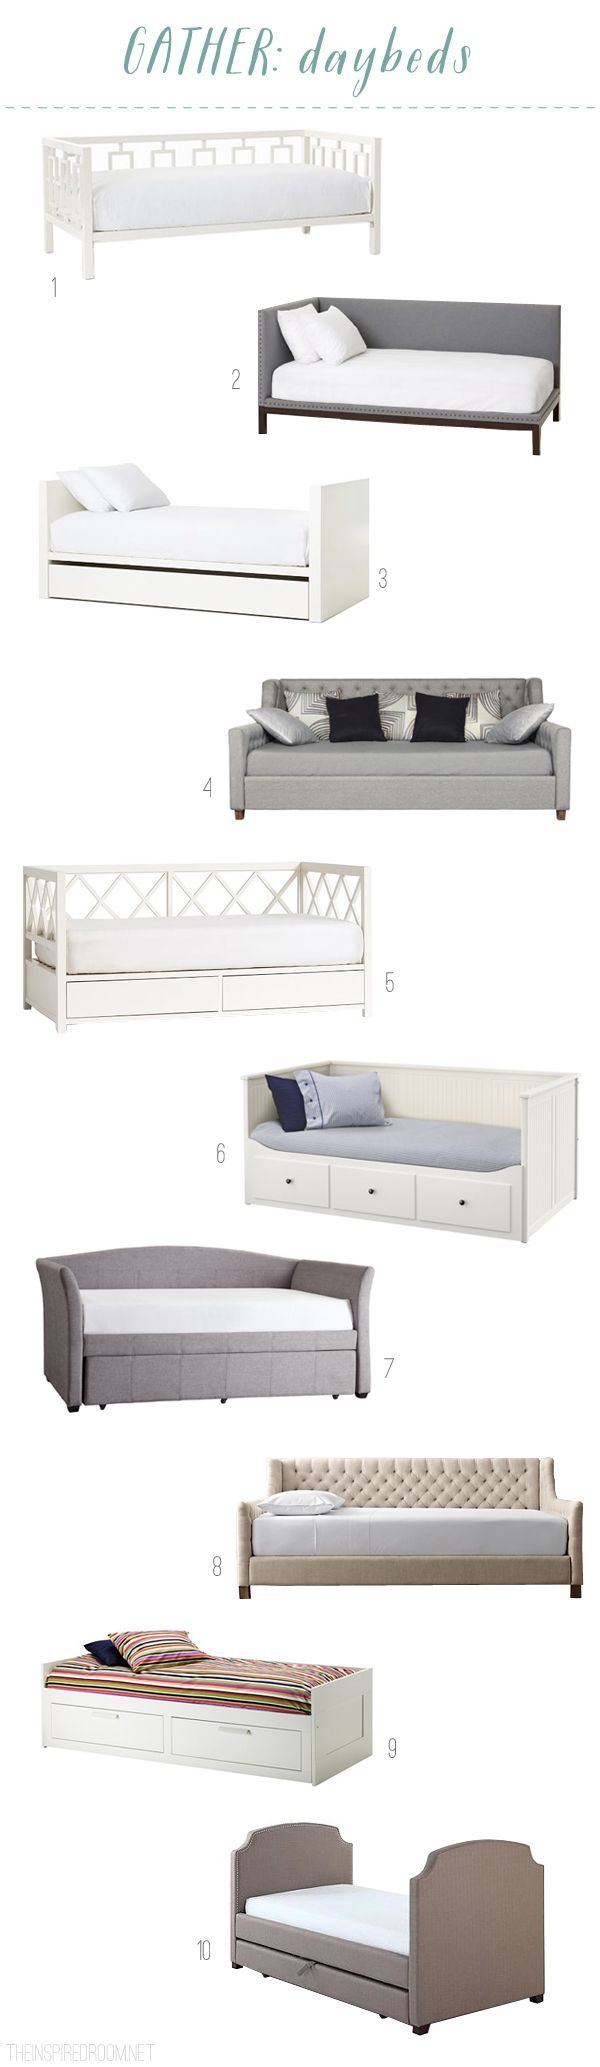 gather daybeds daybed